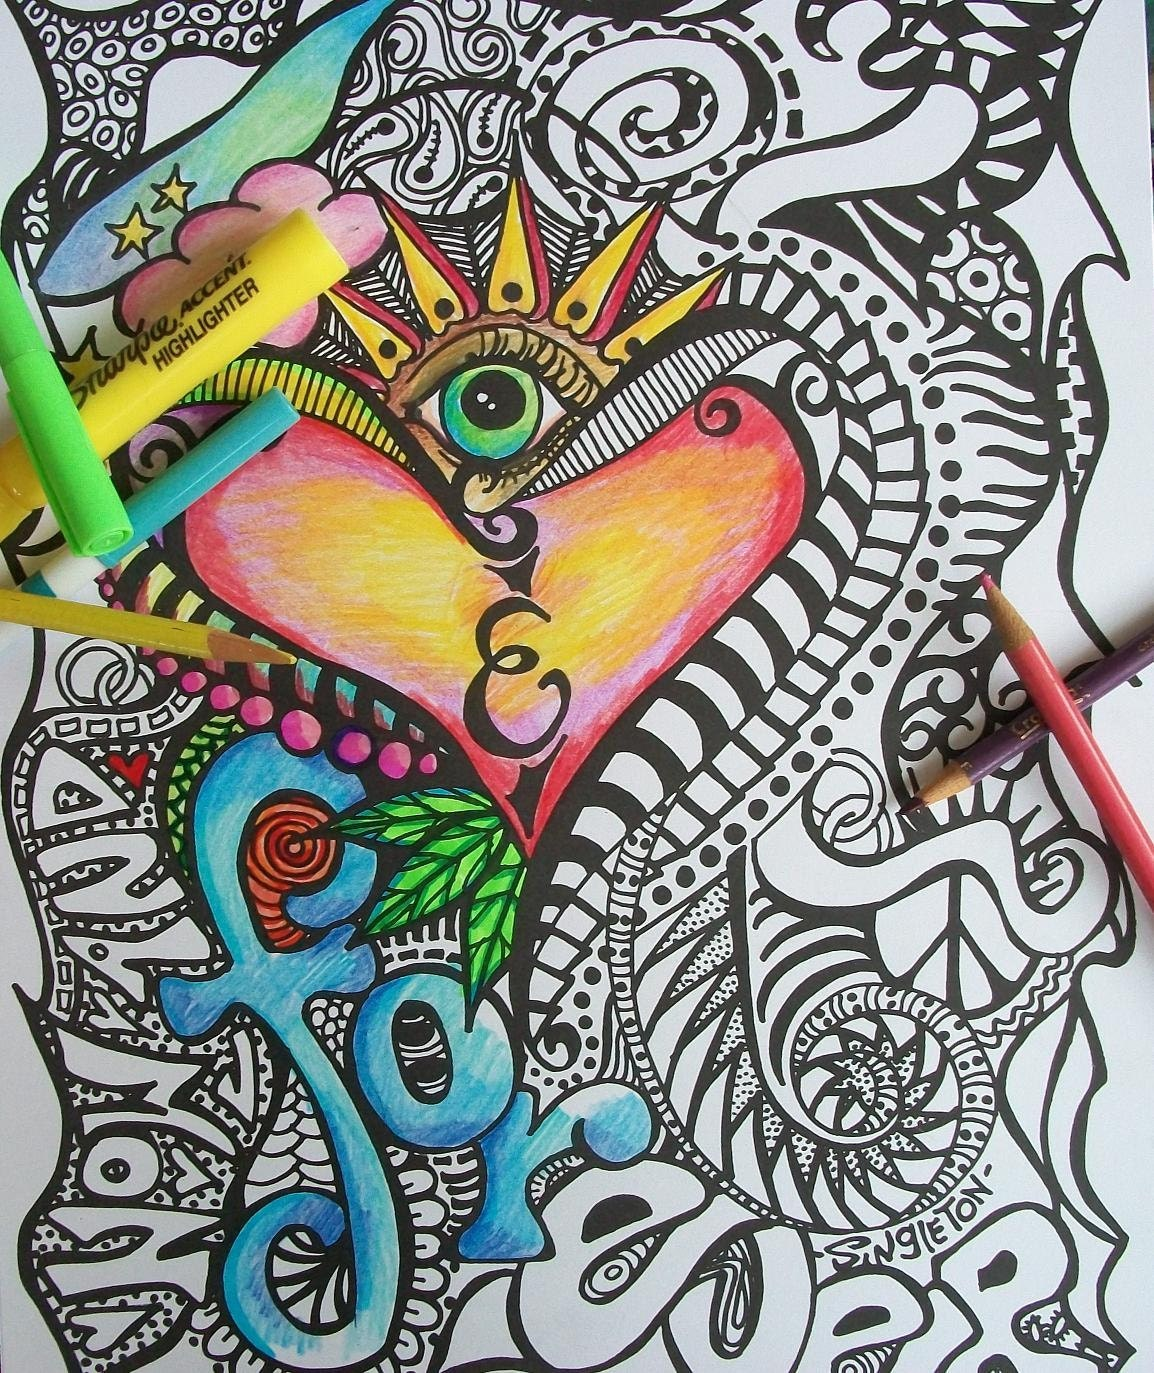 galleries related hippie drawings black and white trippy hippie ...: galleryhip.com/hippie-drawings.html